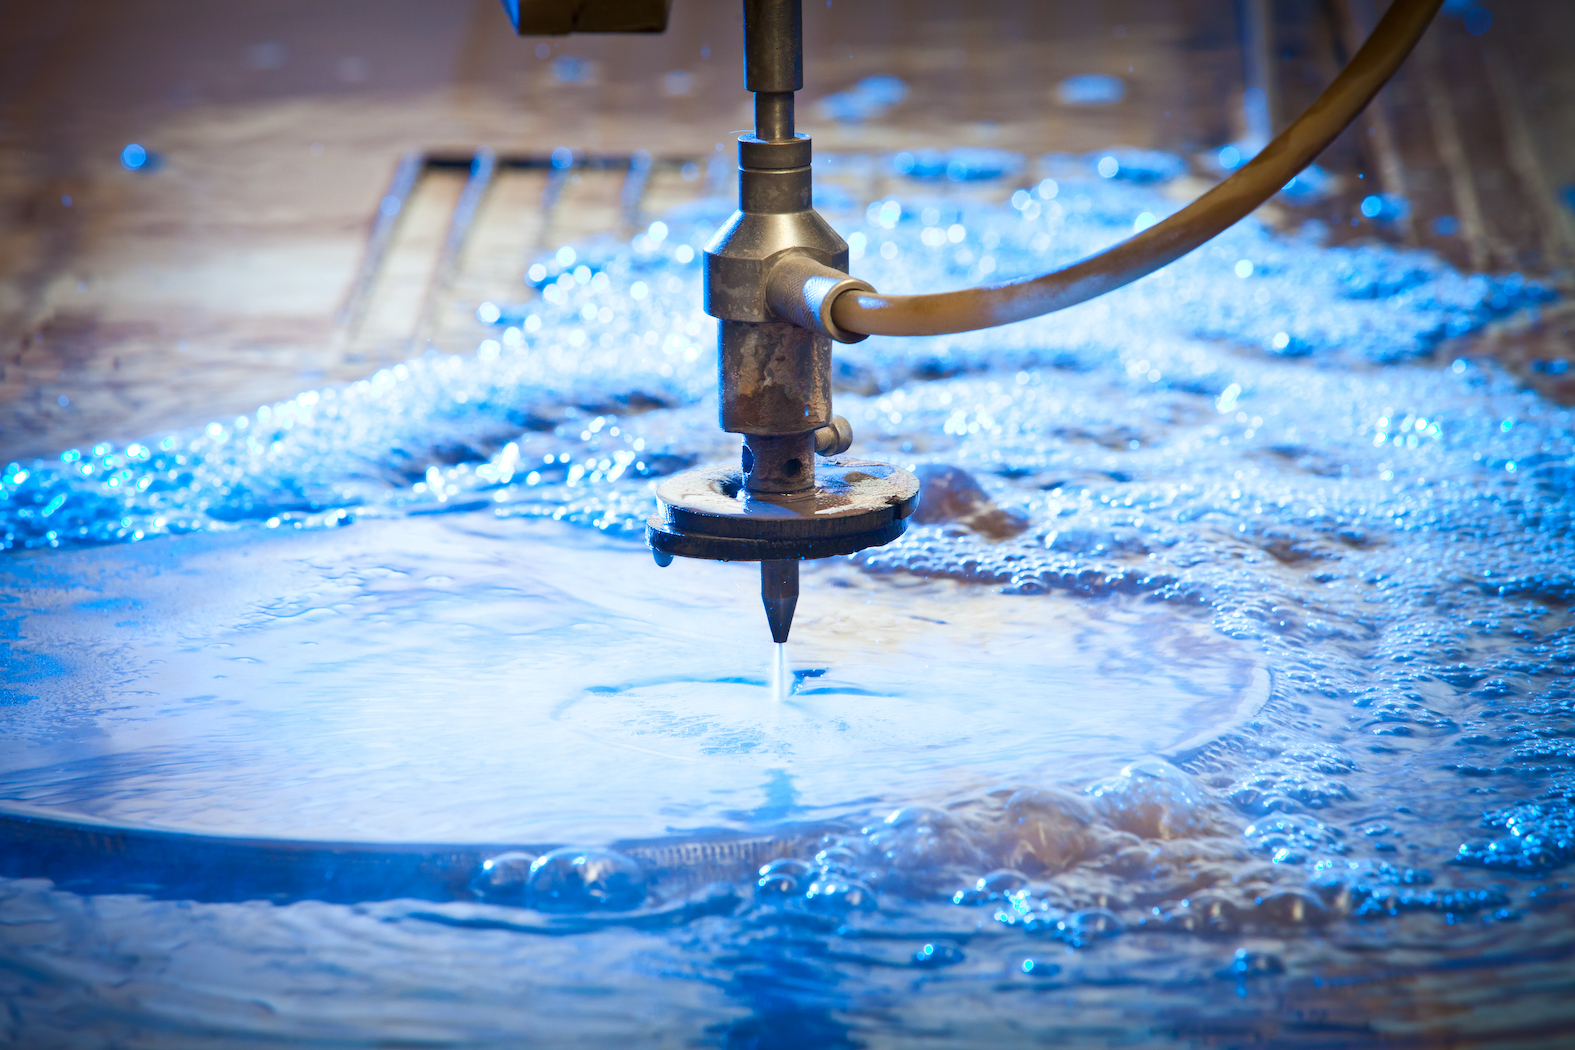 Water-jet Machine at work cutting a steel plate. Detail.